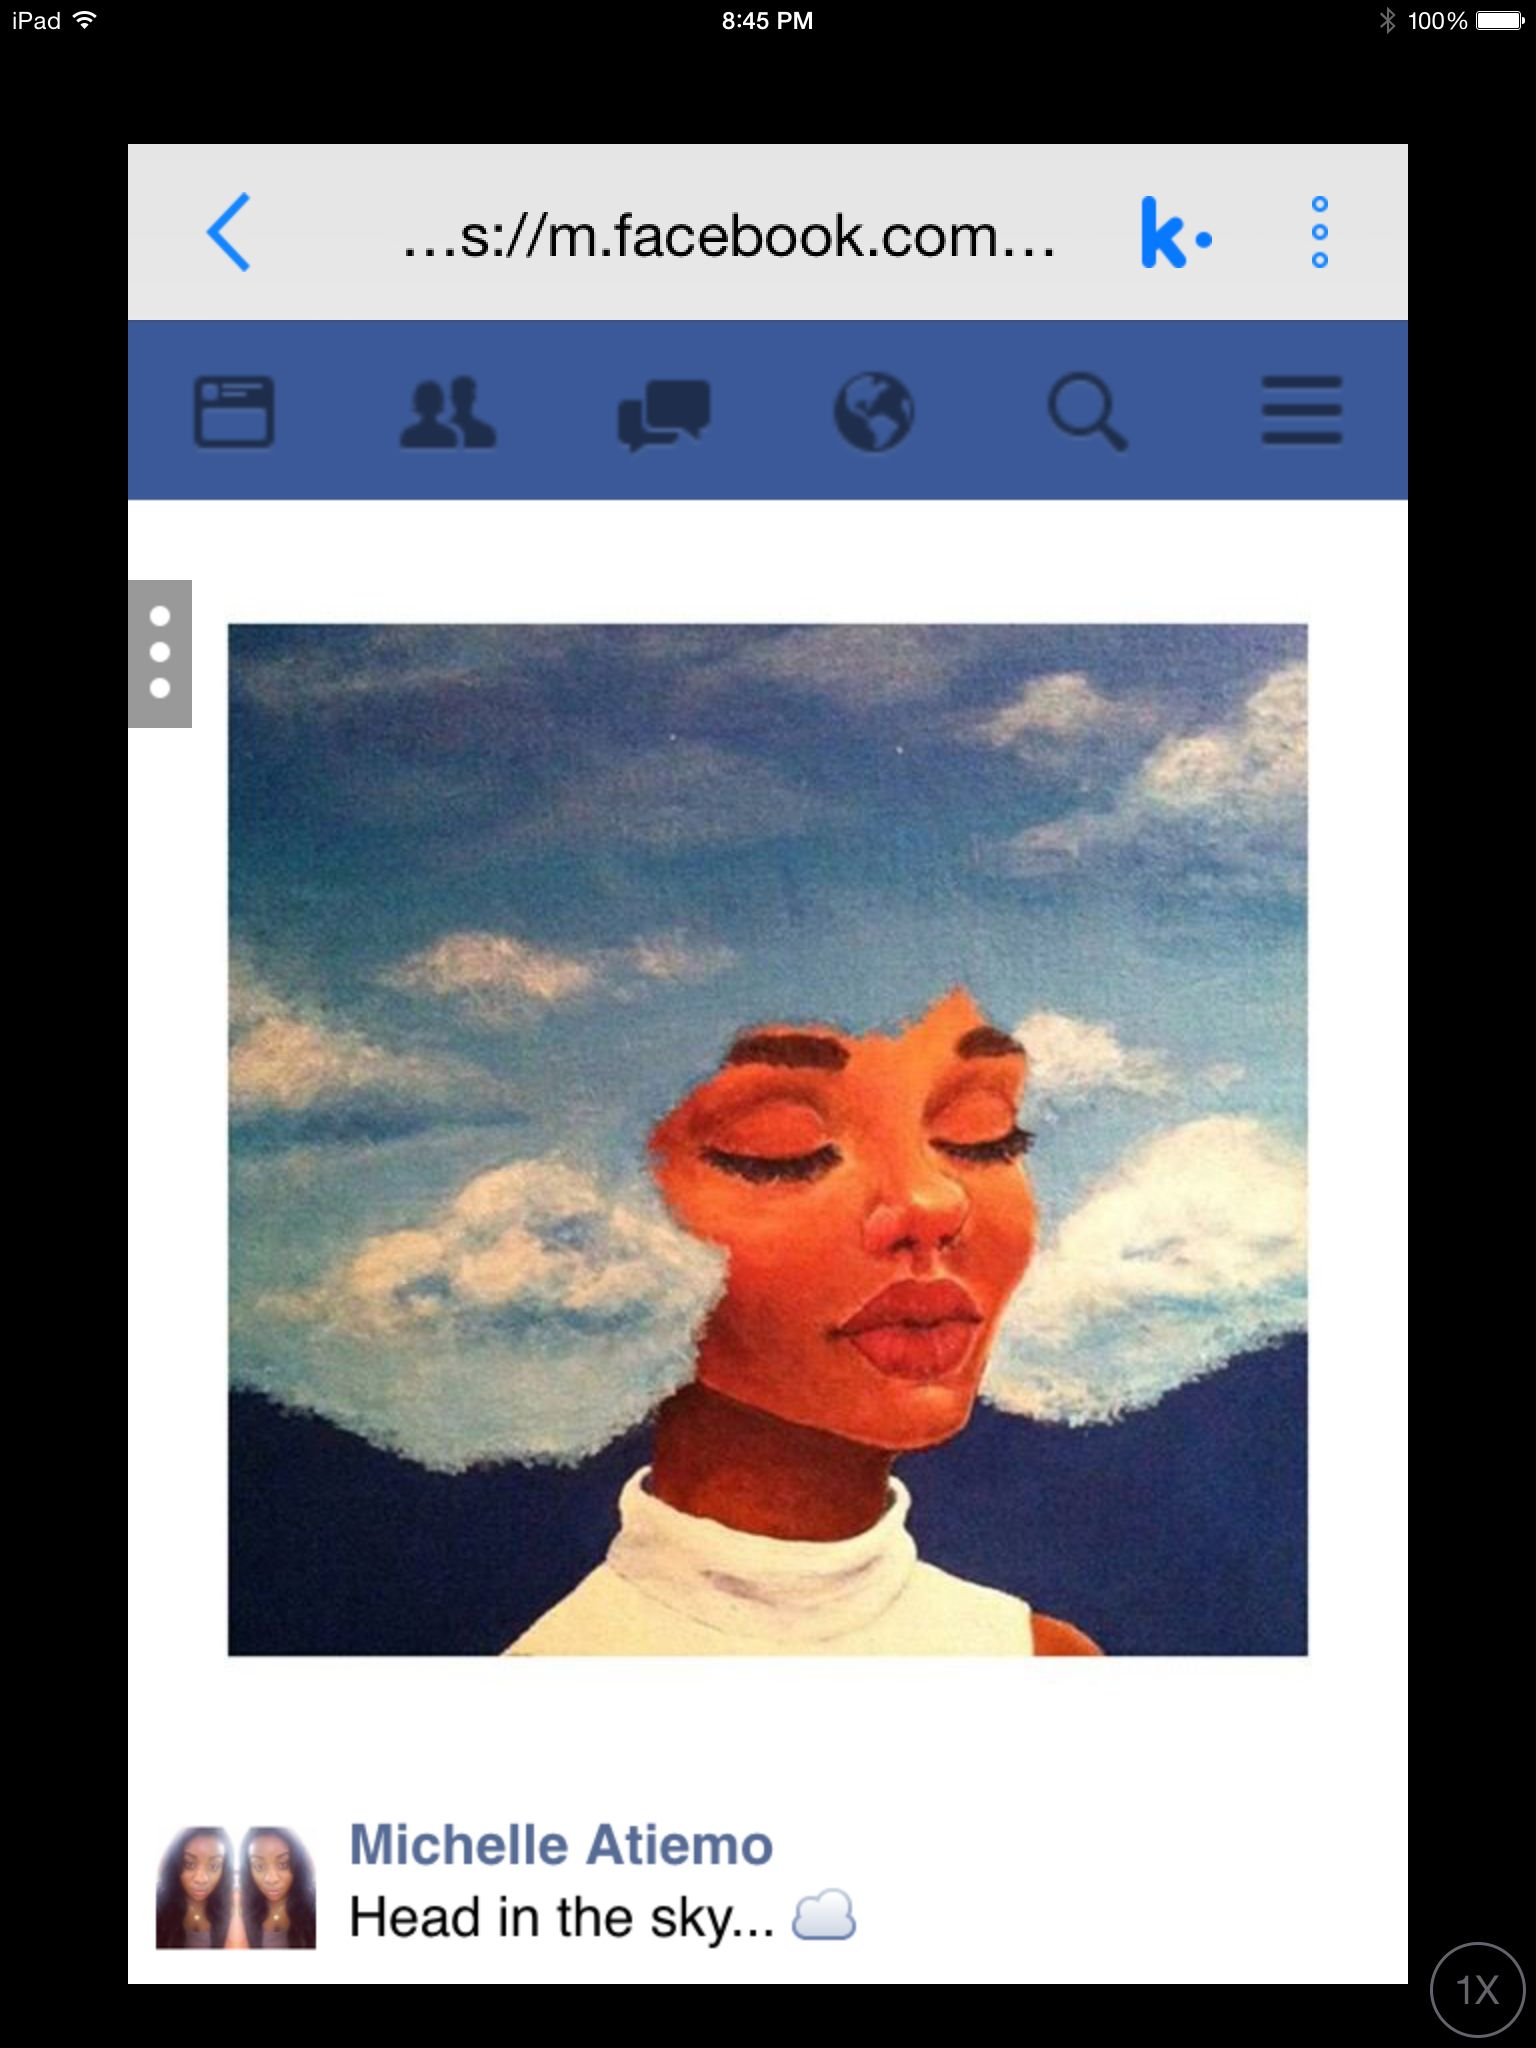 Saw this on Facebook, going to redraw it and title it 'Head In the Clouds'.